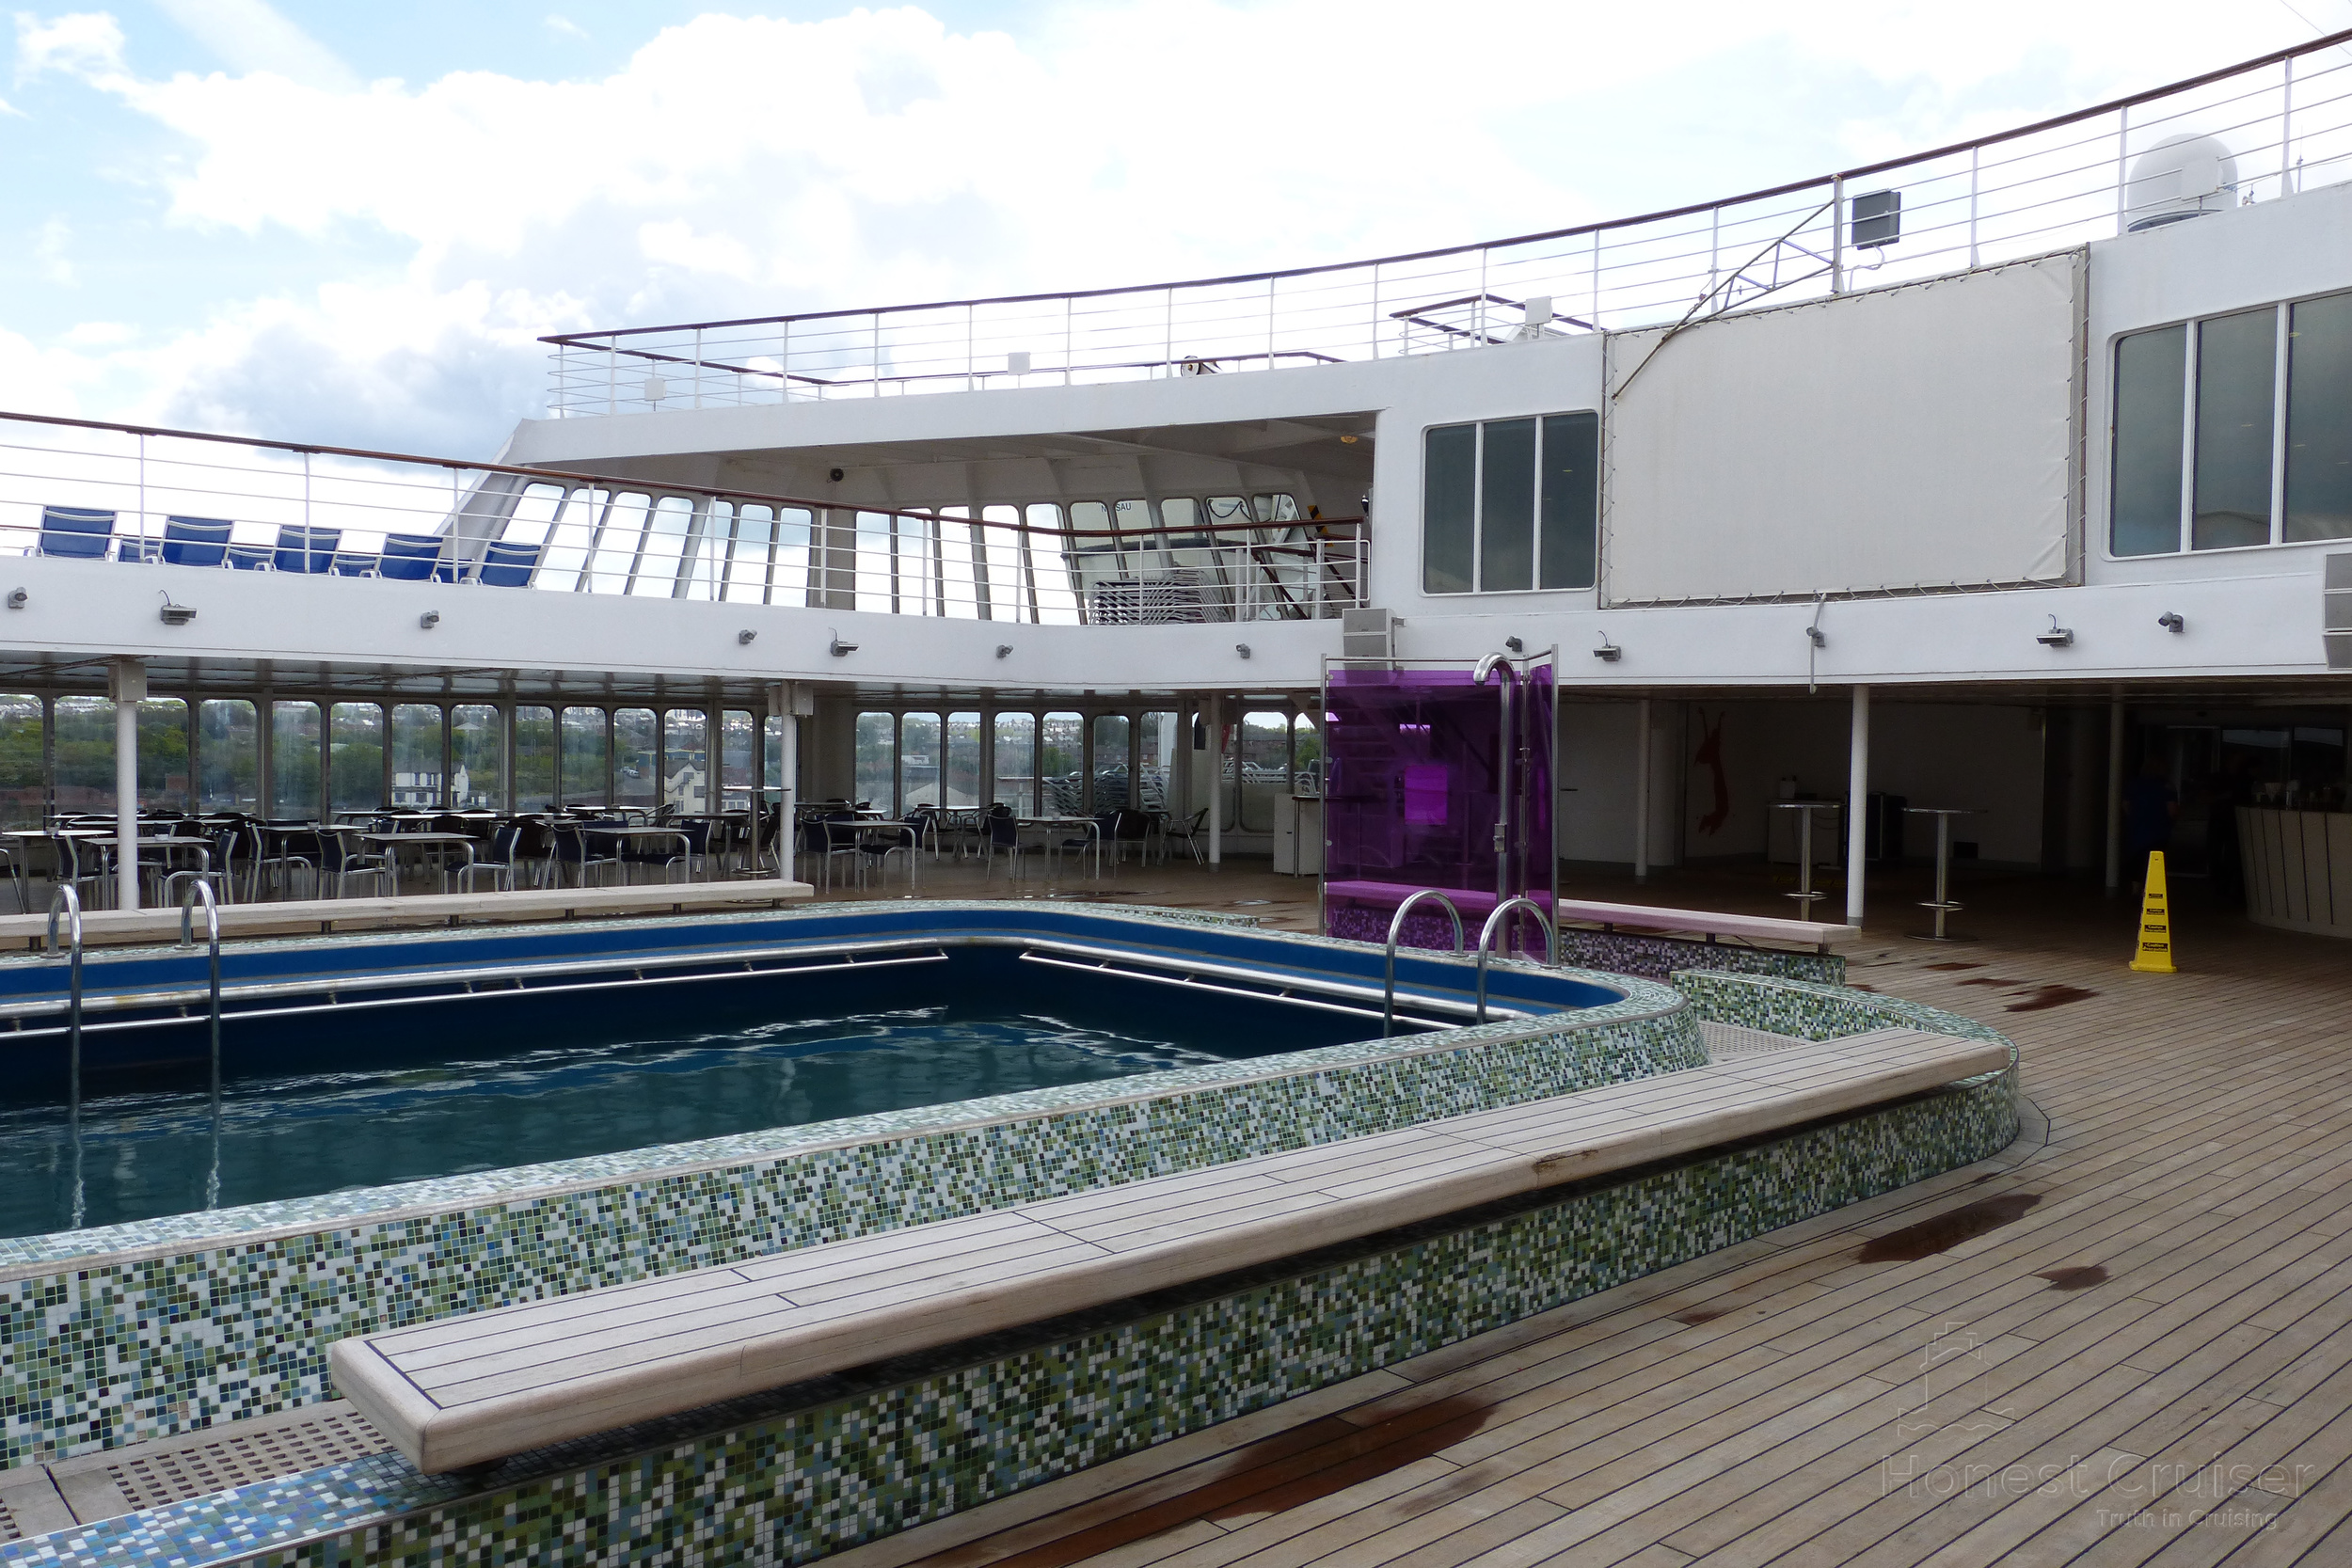 The heart of the ship, the main pool on deck 10.